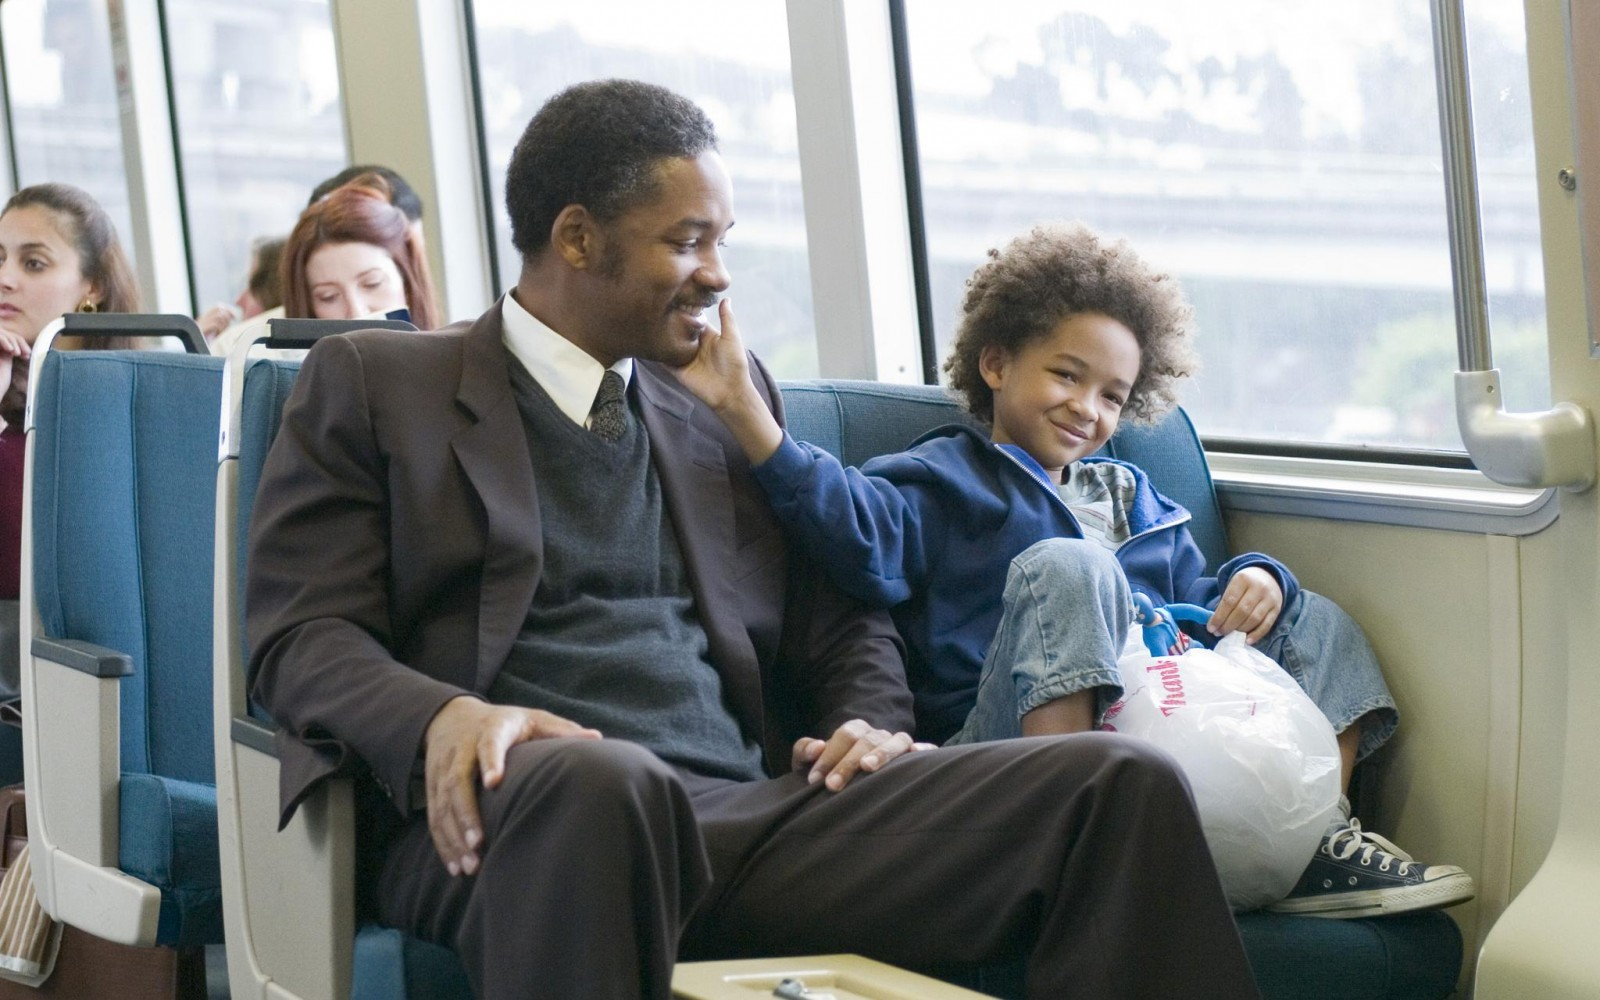 15 Pursuit Of Happyness Quotes That Will Inspire And Strengthen